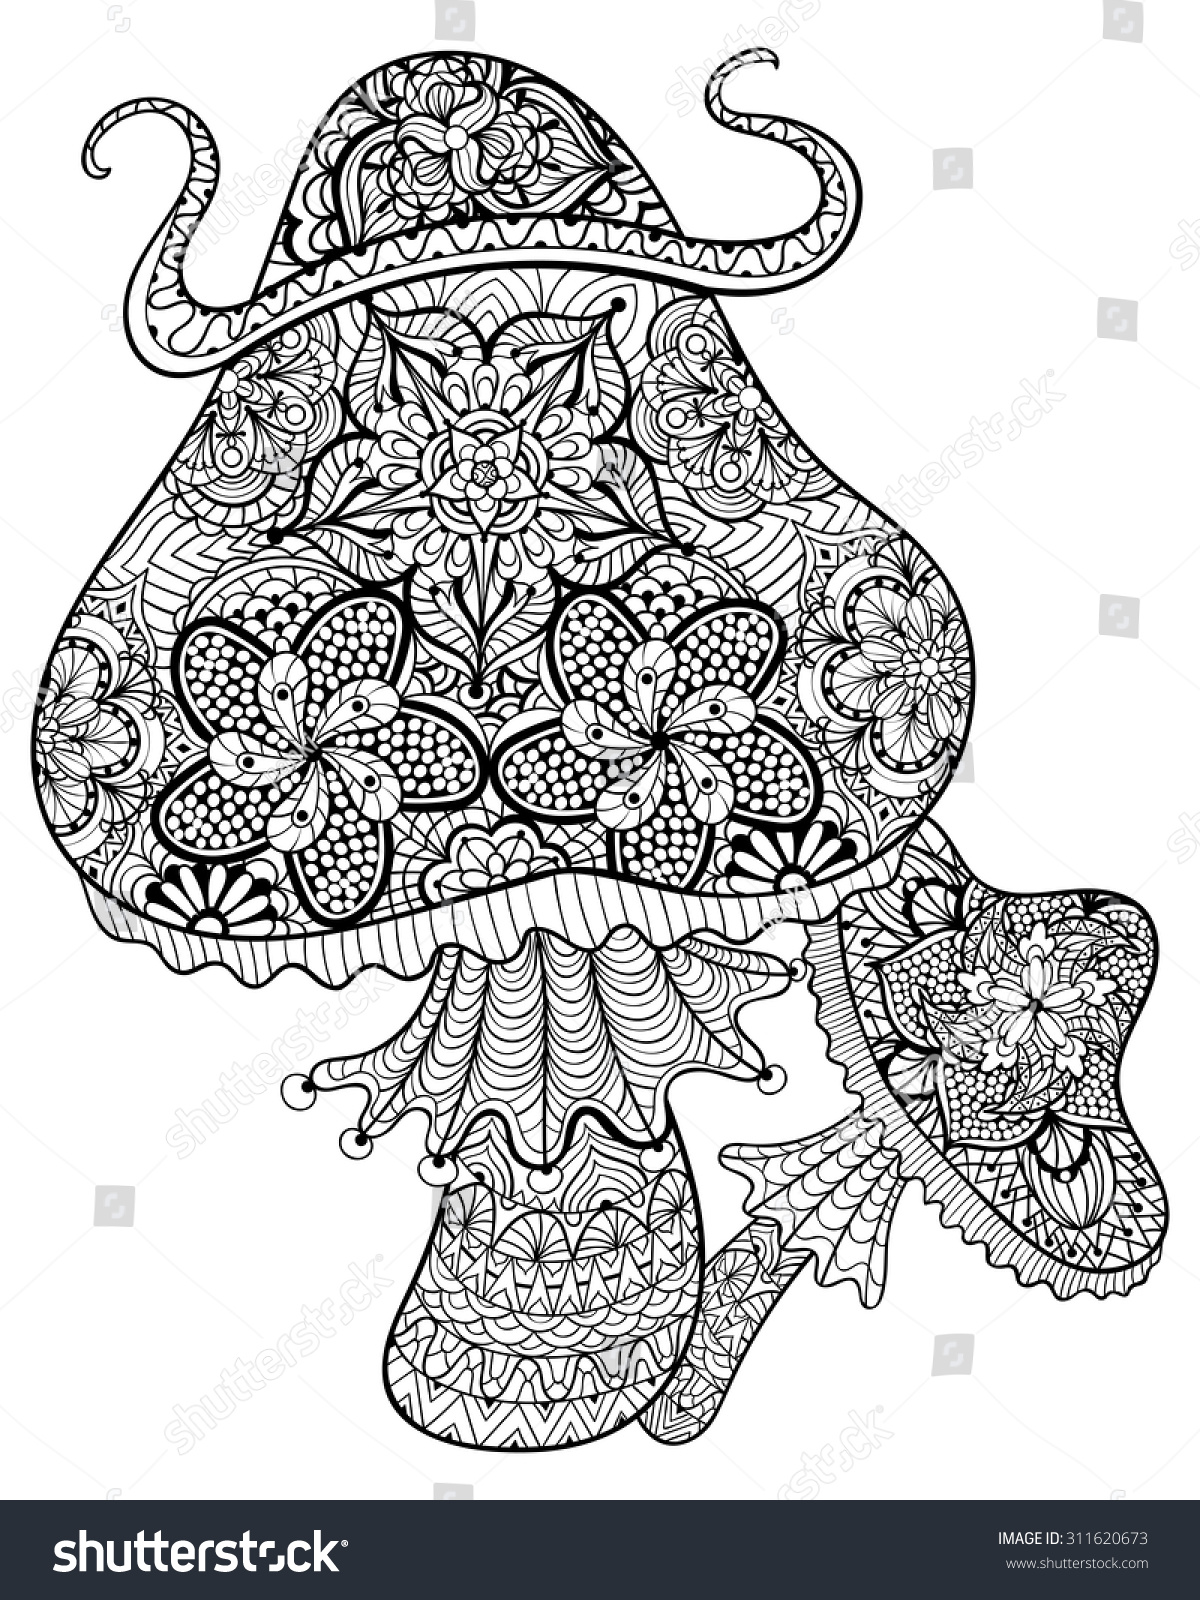 trippy coloring pages mushrooms nutrition - photo#30